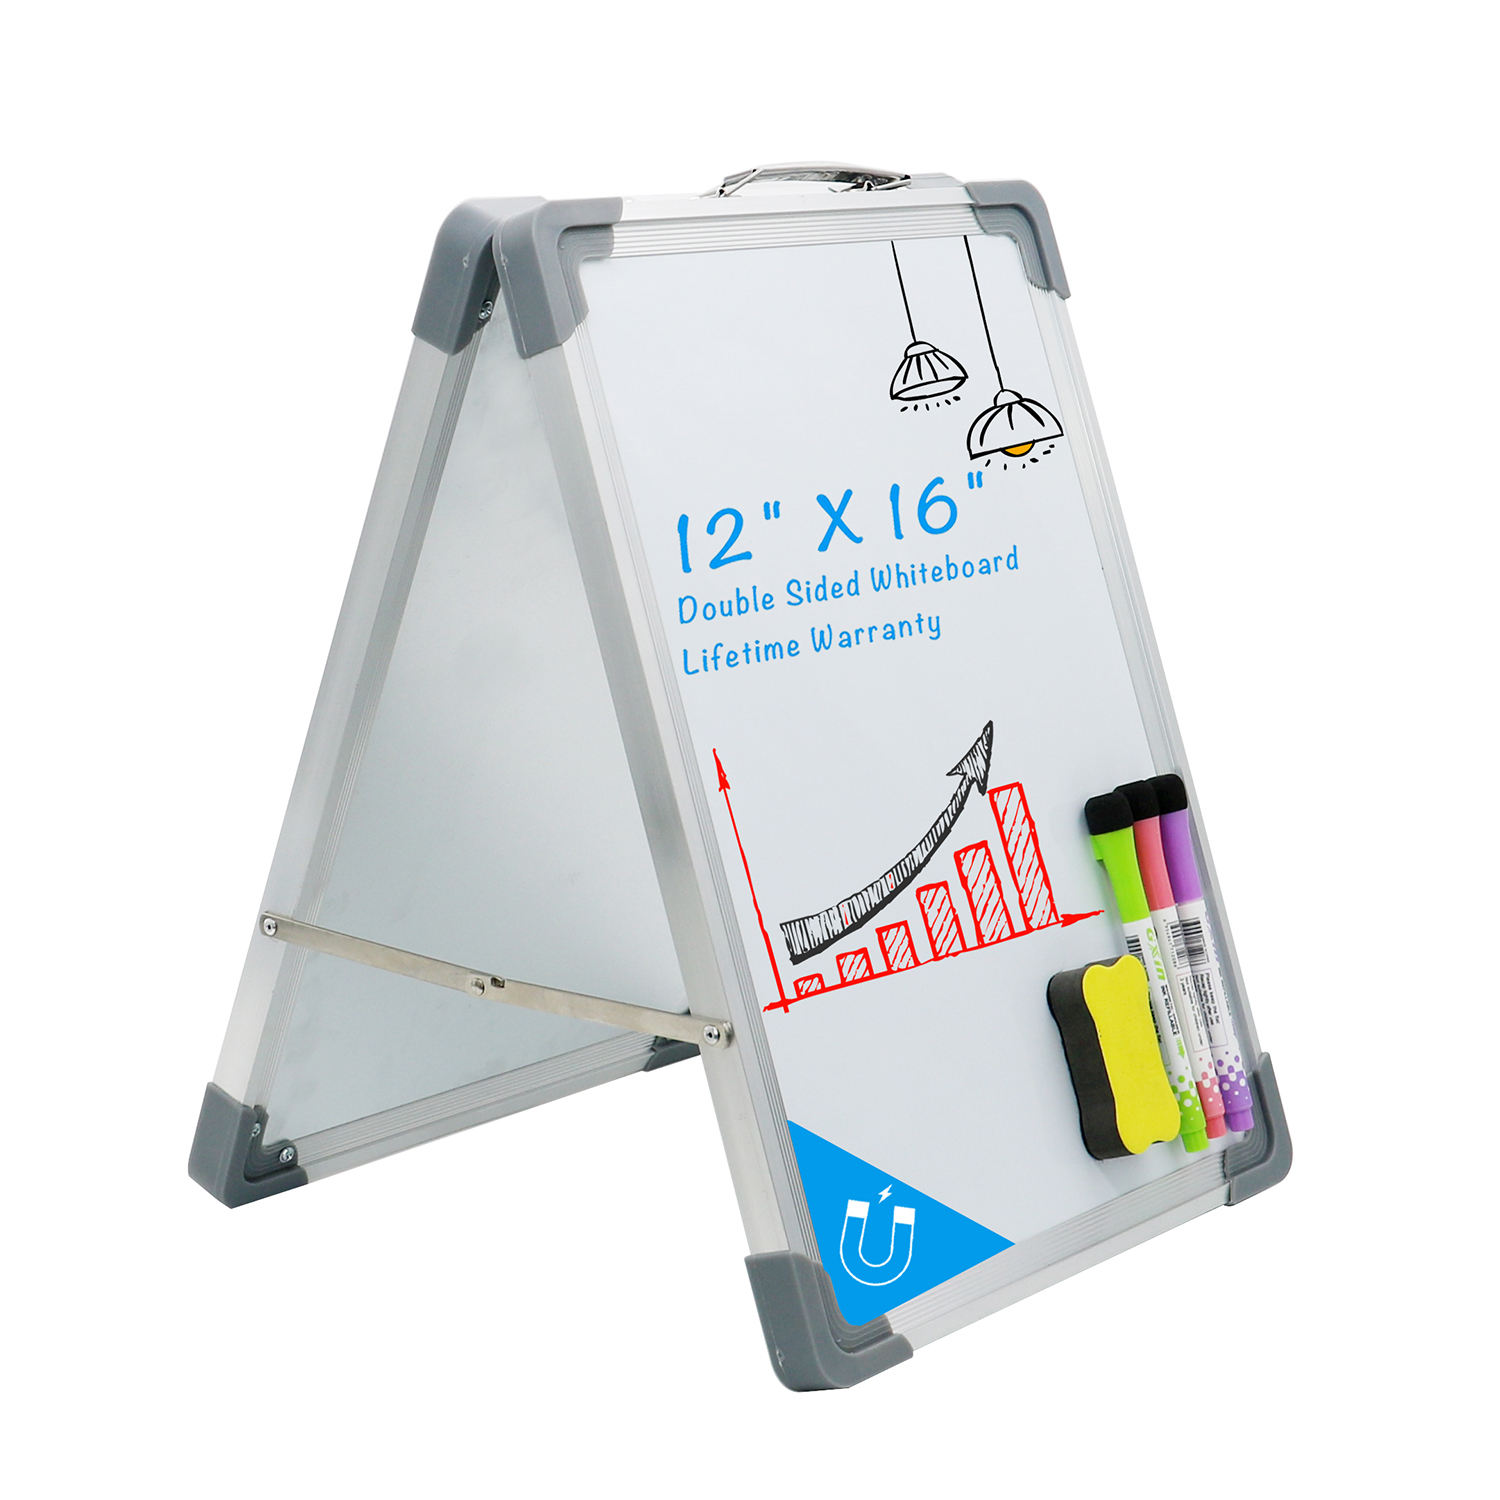 Desktop Magnetic Small Dry Eraser Board Folding Kids Double Side White Board for Home Office Classroom Use Whiteboard